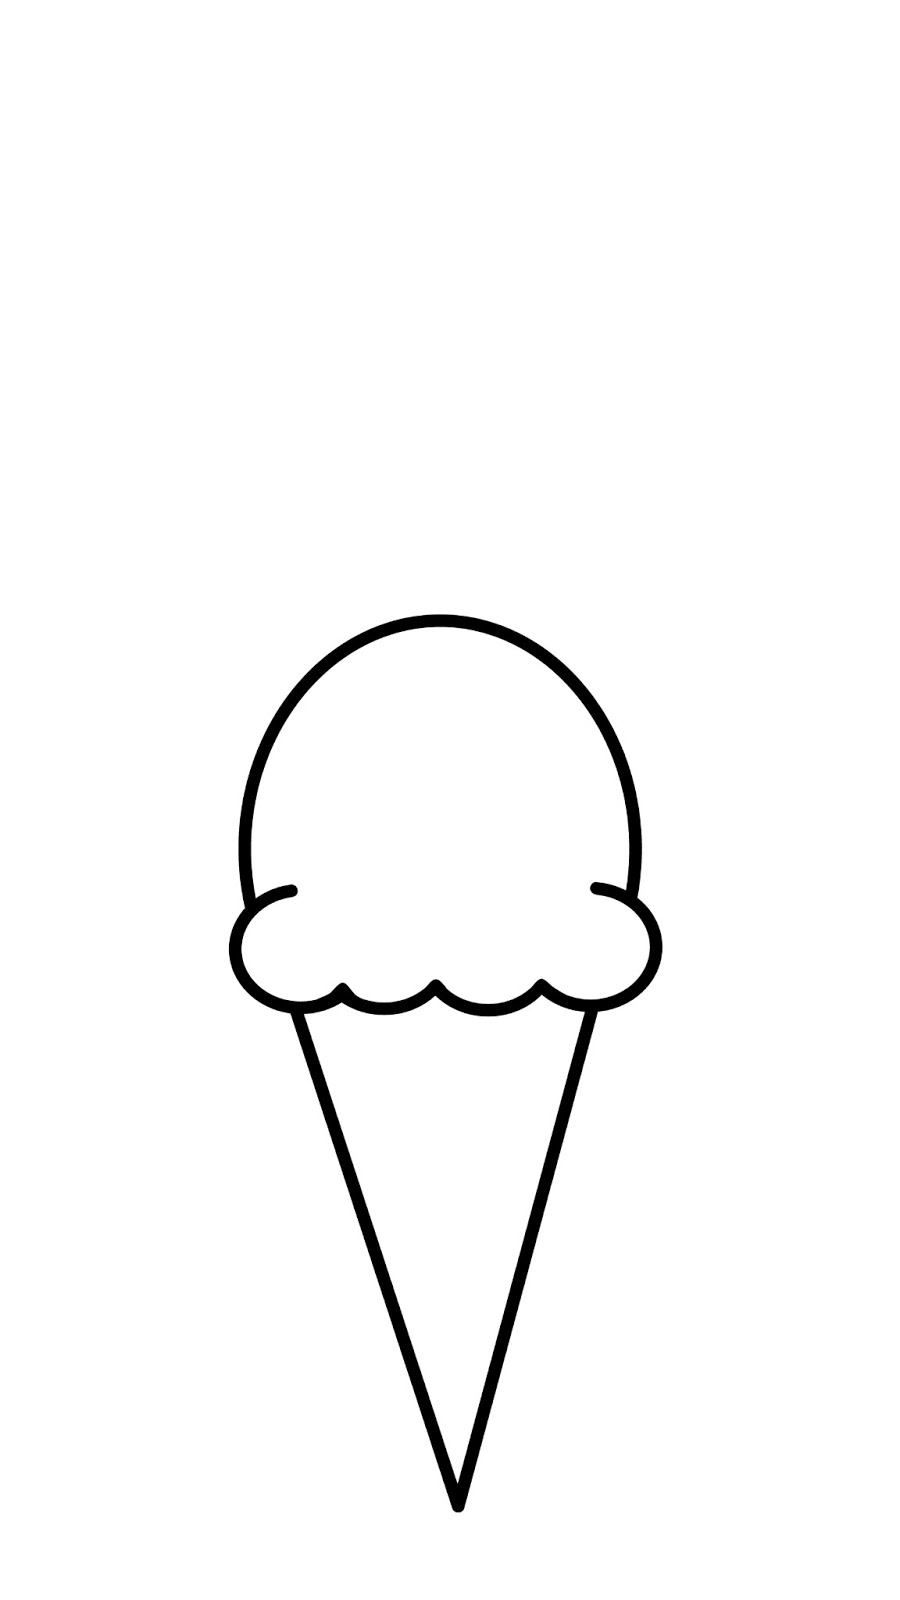 How To Draw A Ice